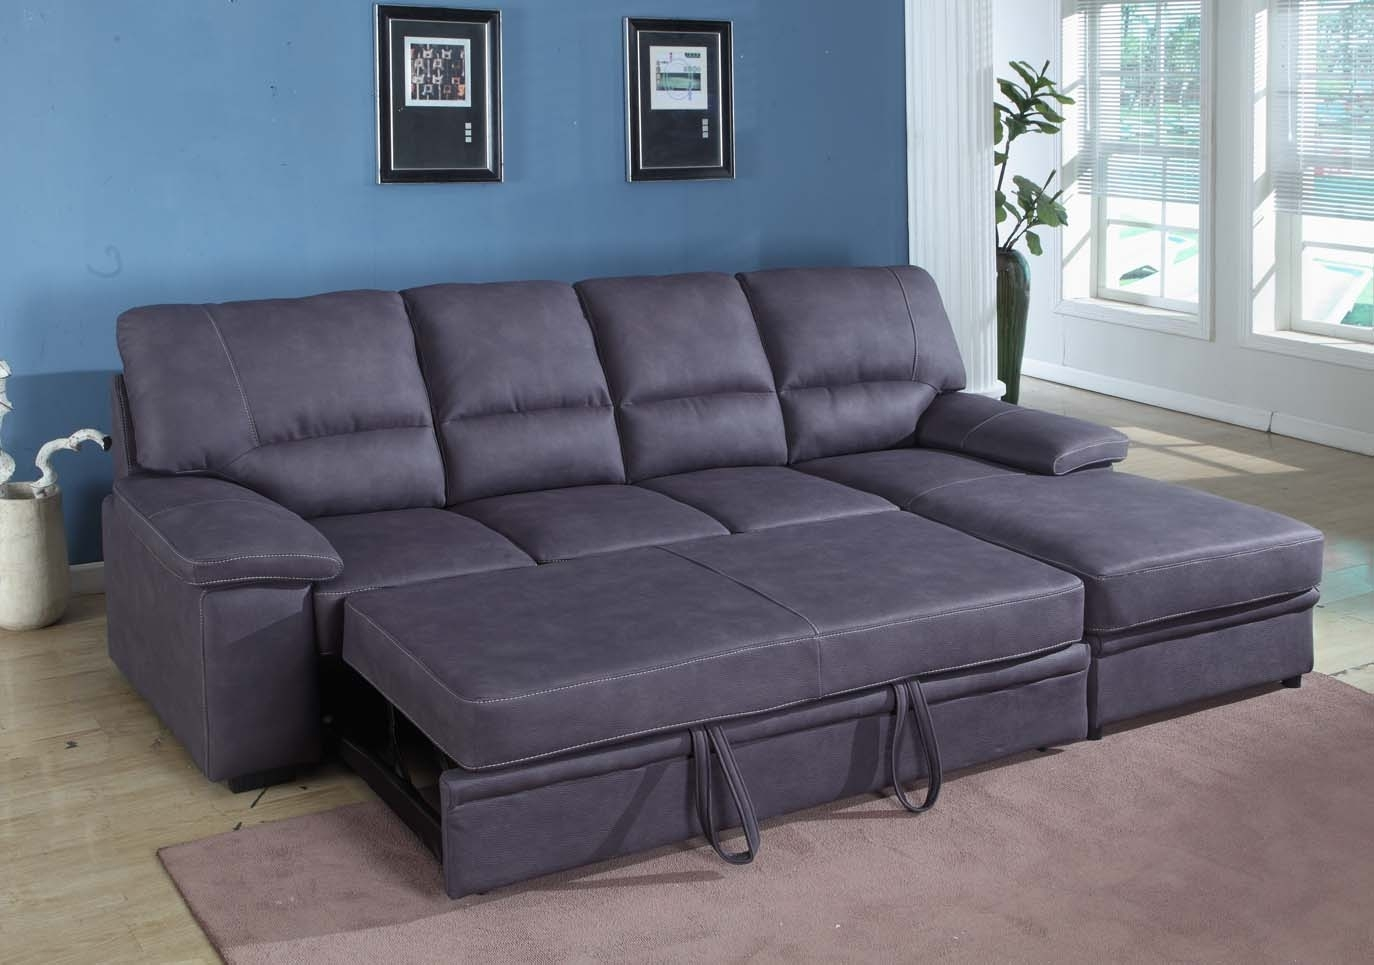 Incredible Design King Size Sleeper Sofas Custom Sectional Sofa Plus Inside King Size Sleeper Sofas (View 4 of 10)